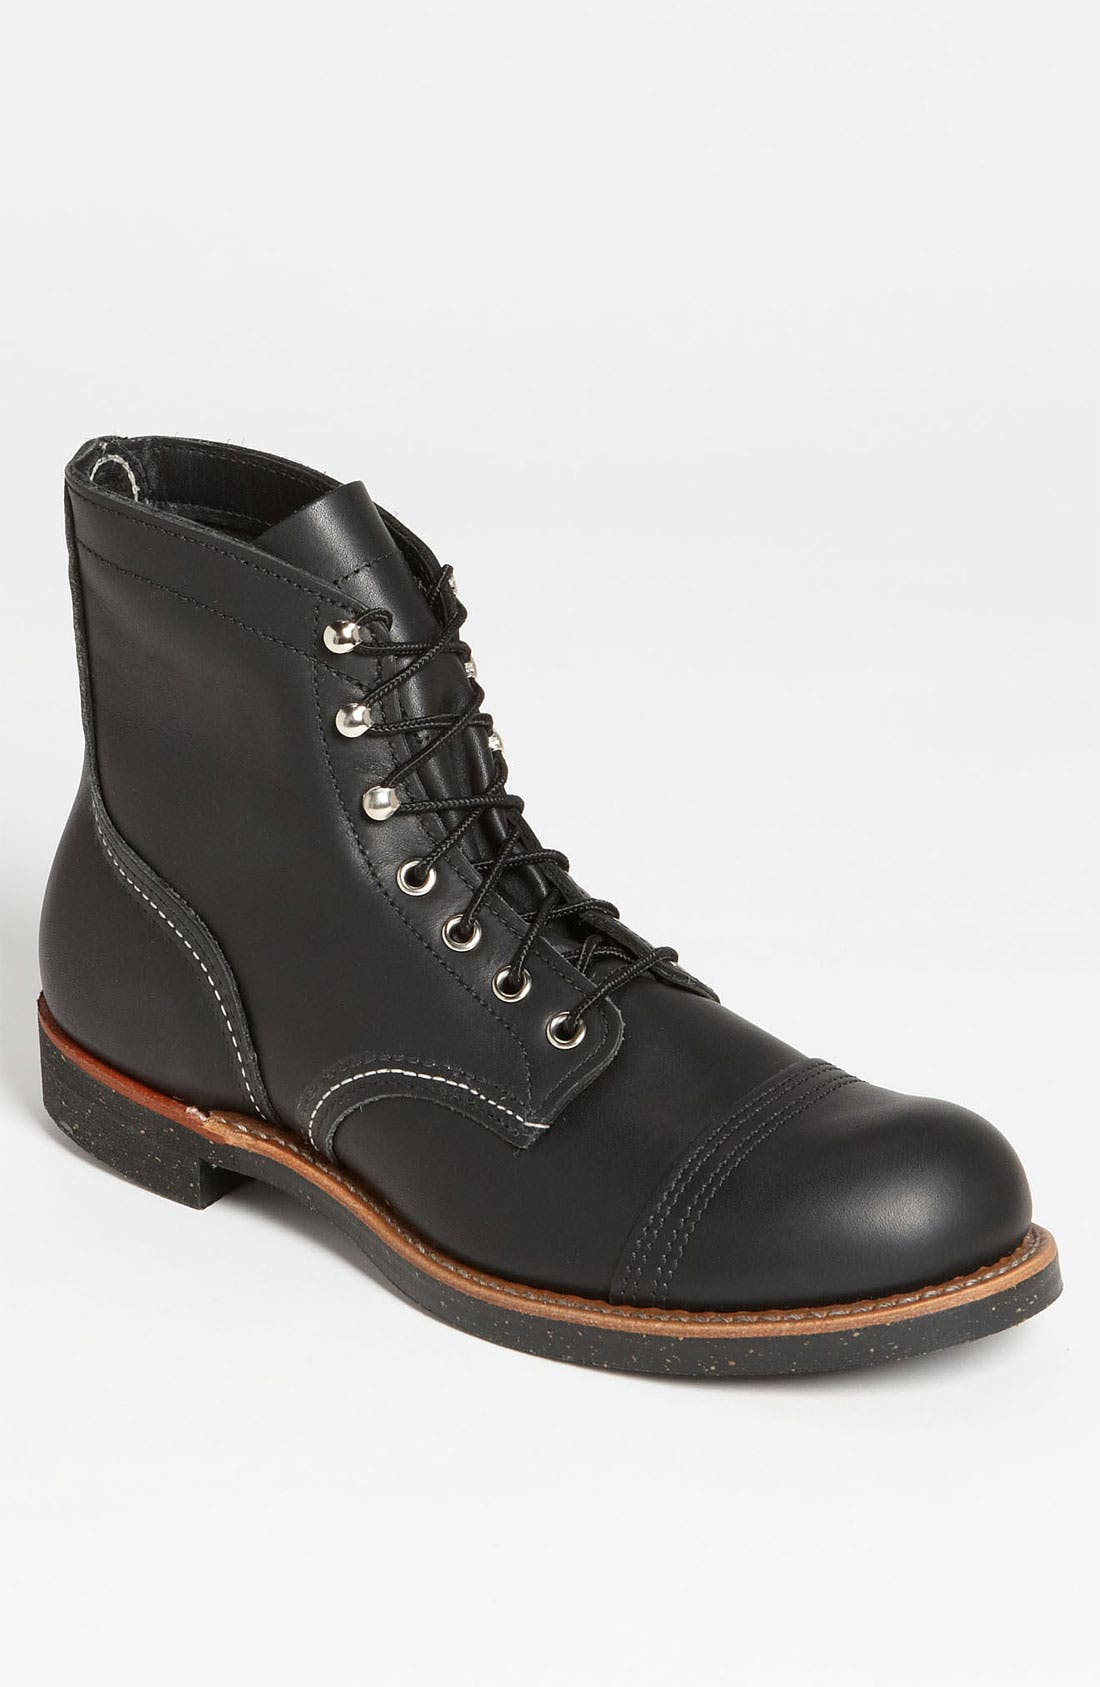 RED WING 'Iron Ranger' 6 Inch Cap Toe